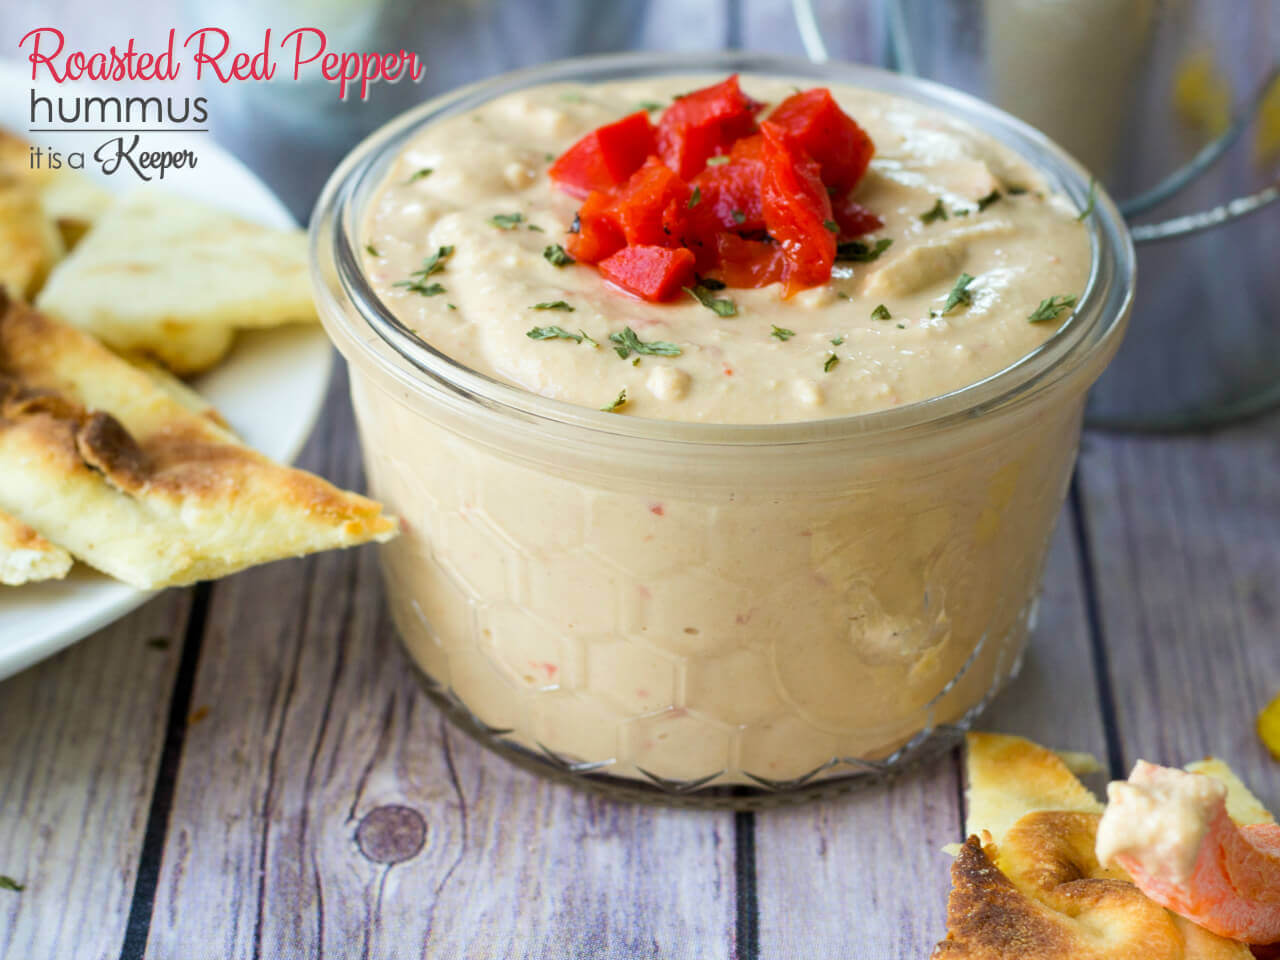 Roasted Red Pepper Hummus - this easy dip makes a great appetizer or snack